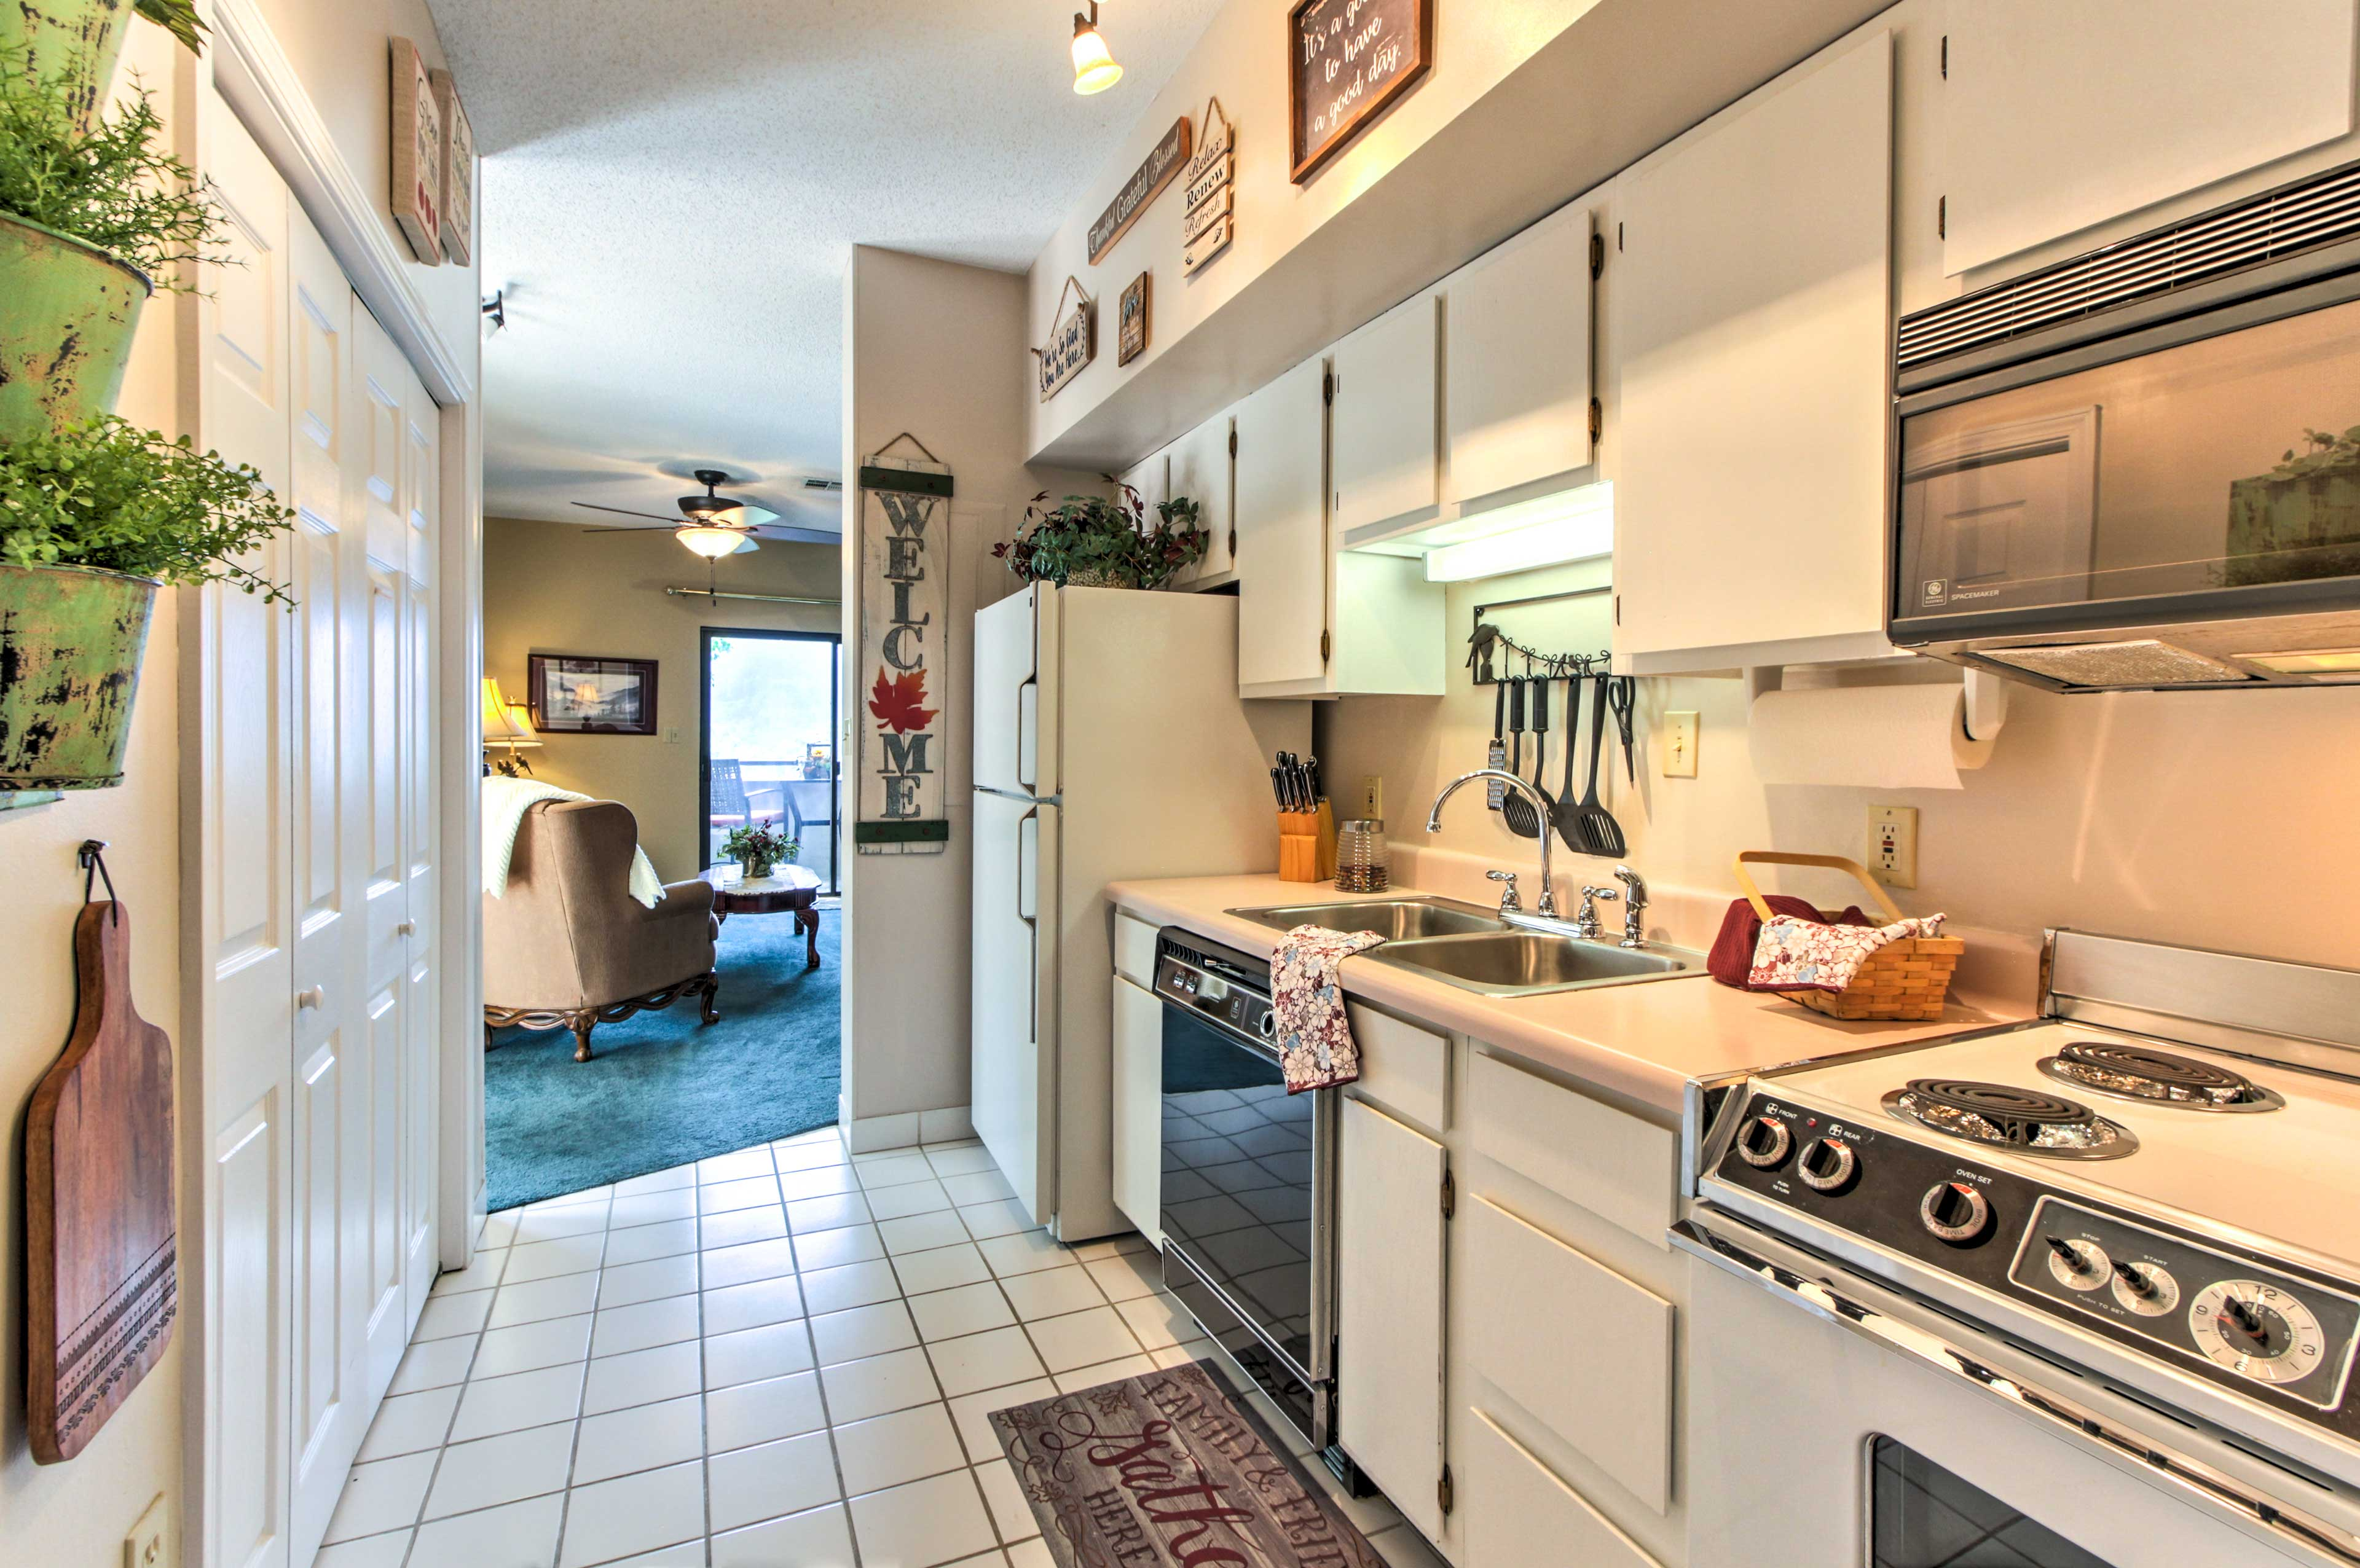 The fully equipped kitchen provides everything needed for home cooking!